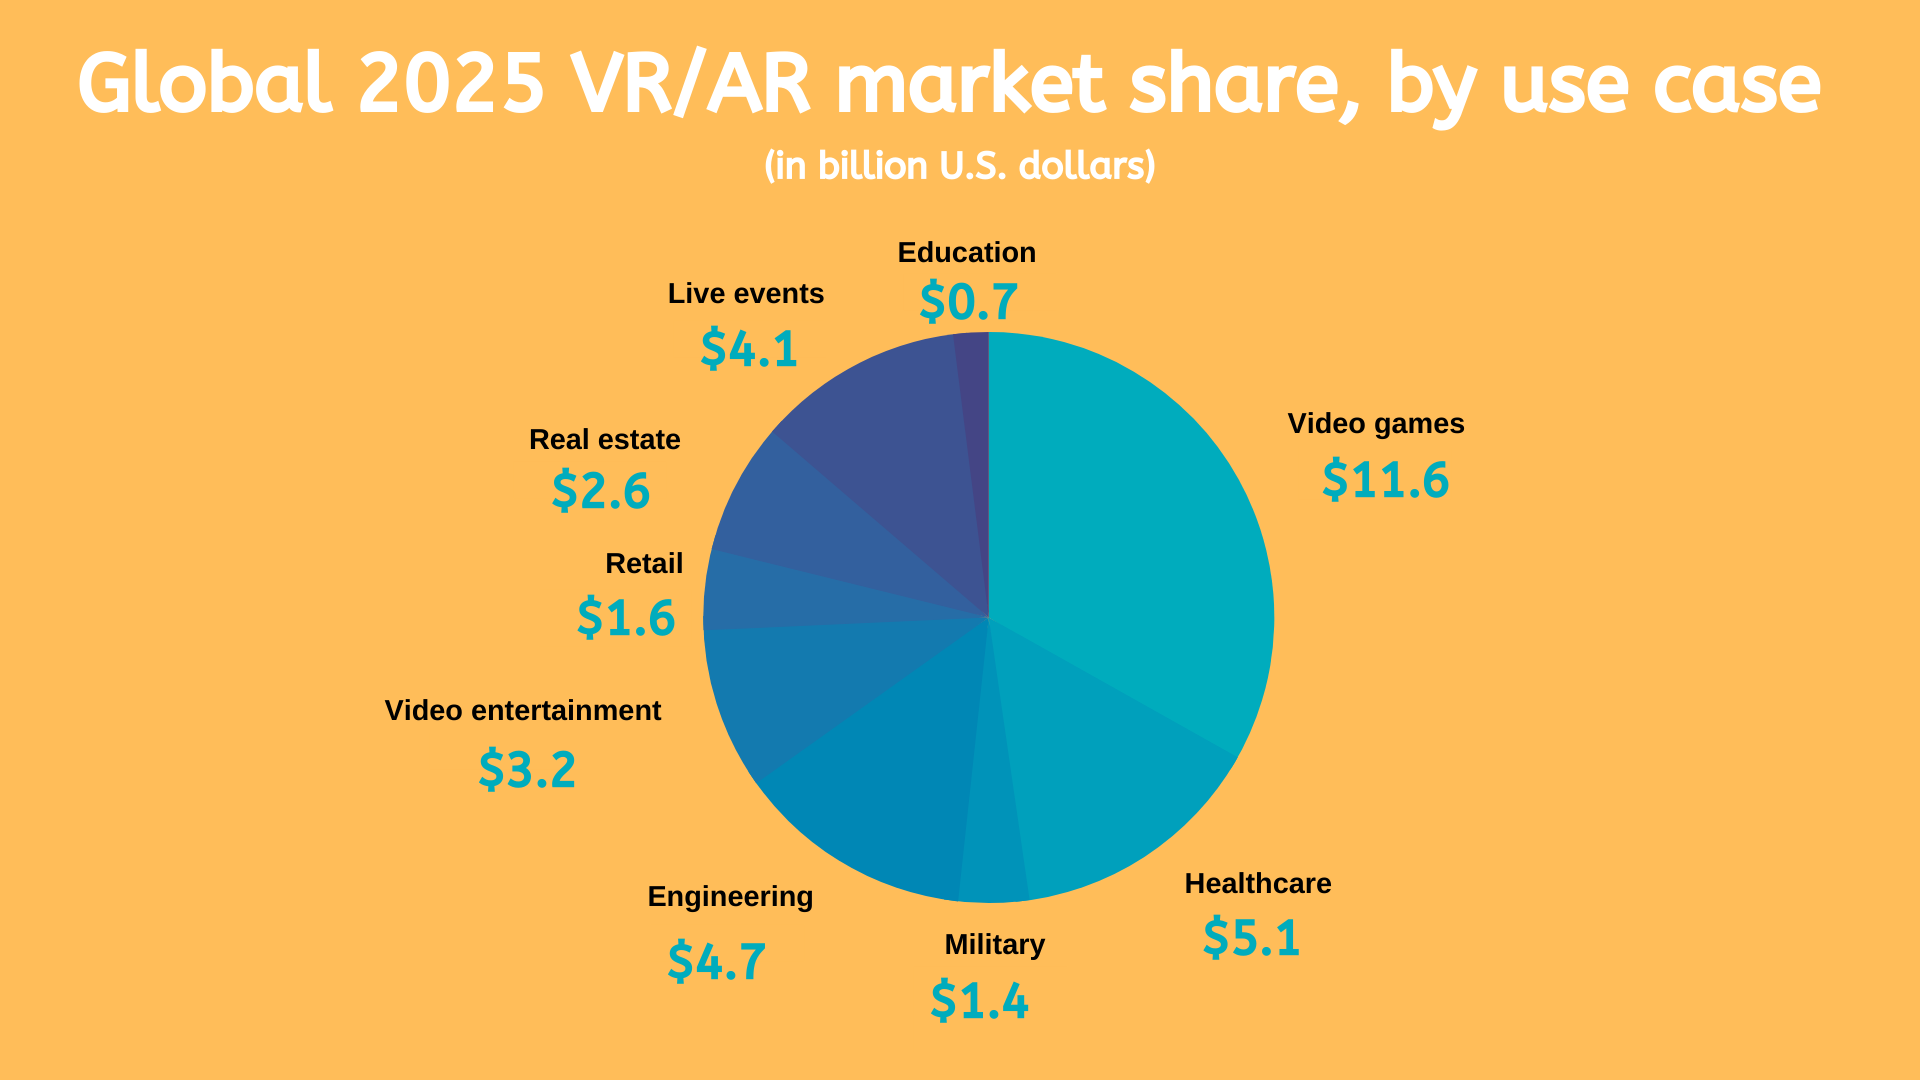 Global 2025 VR/AR market share, by use case.